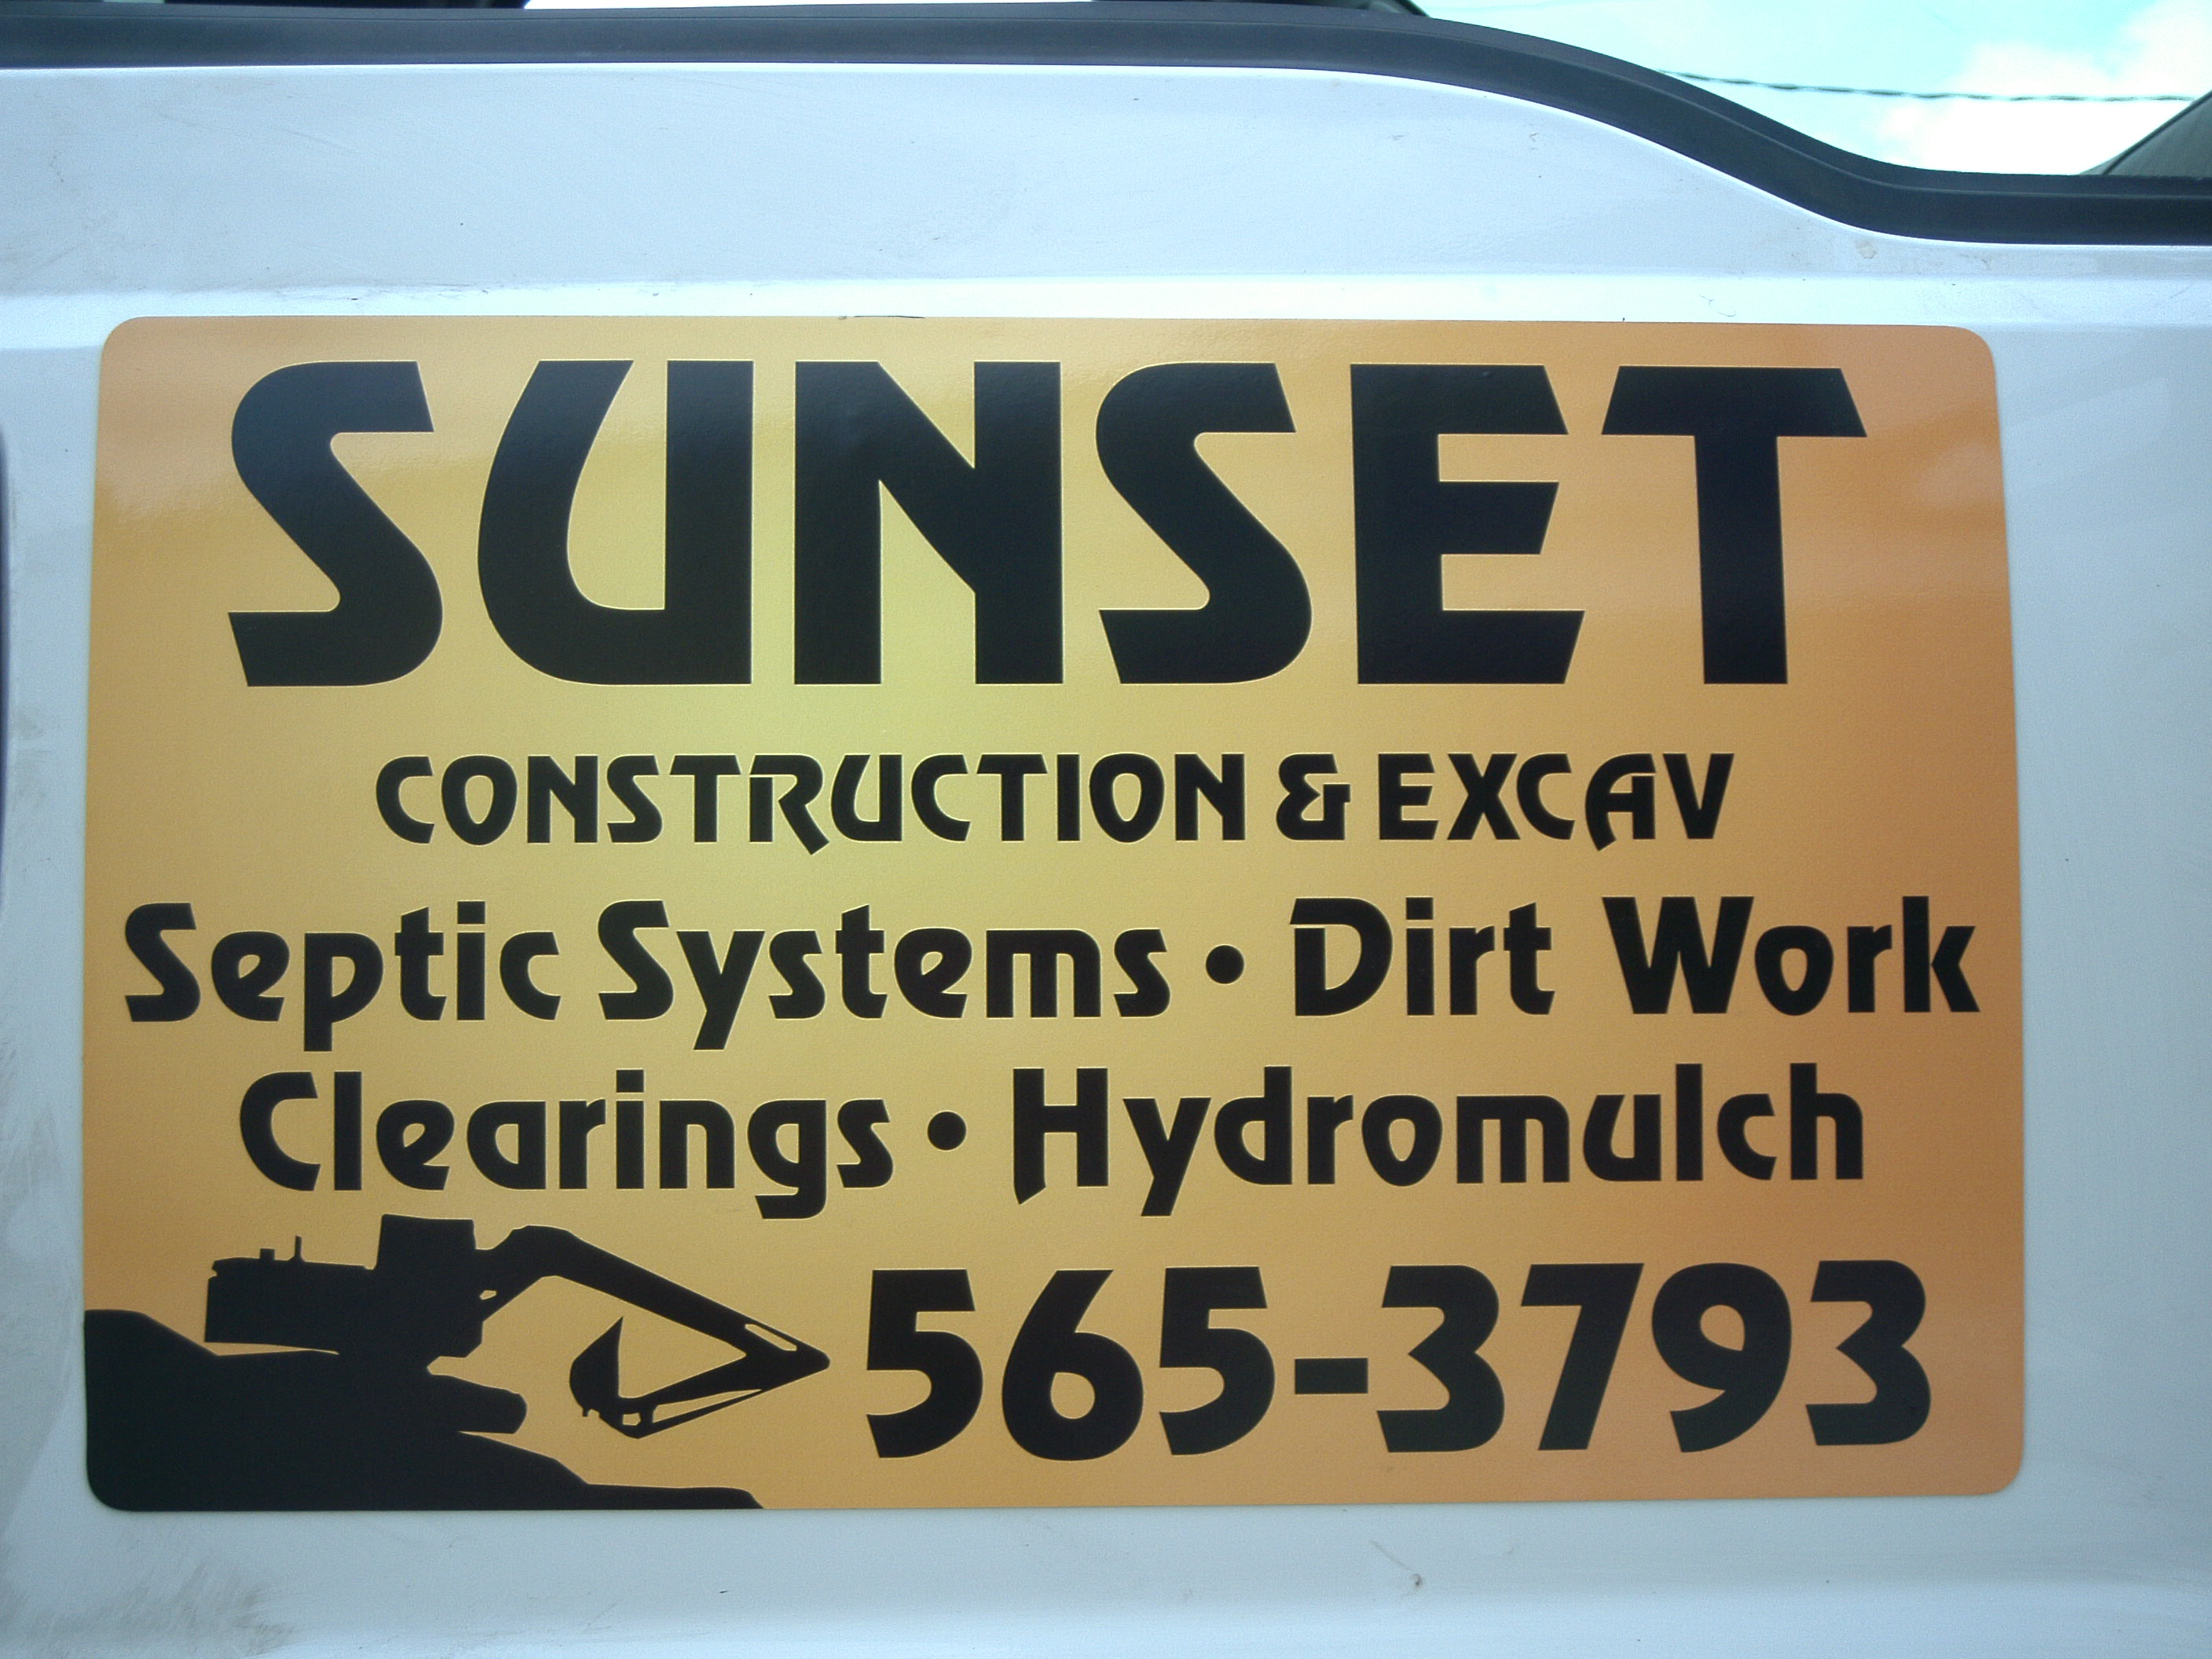 Sunset Construction - lk10152.JPG